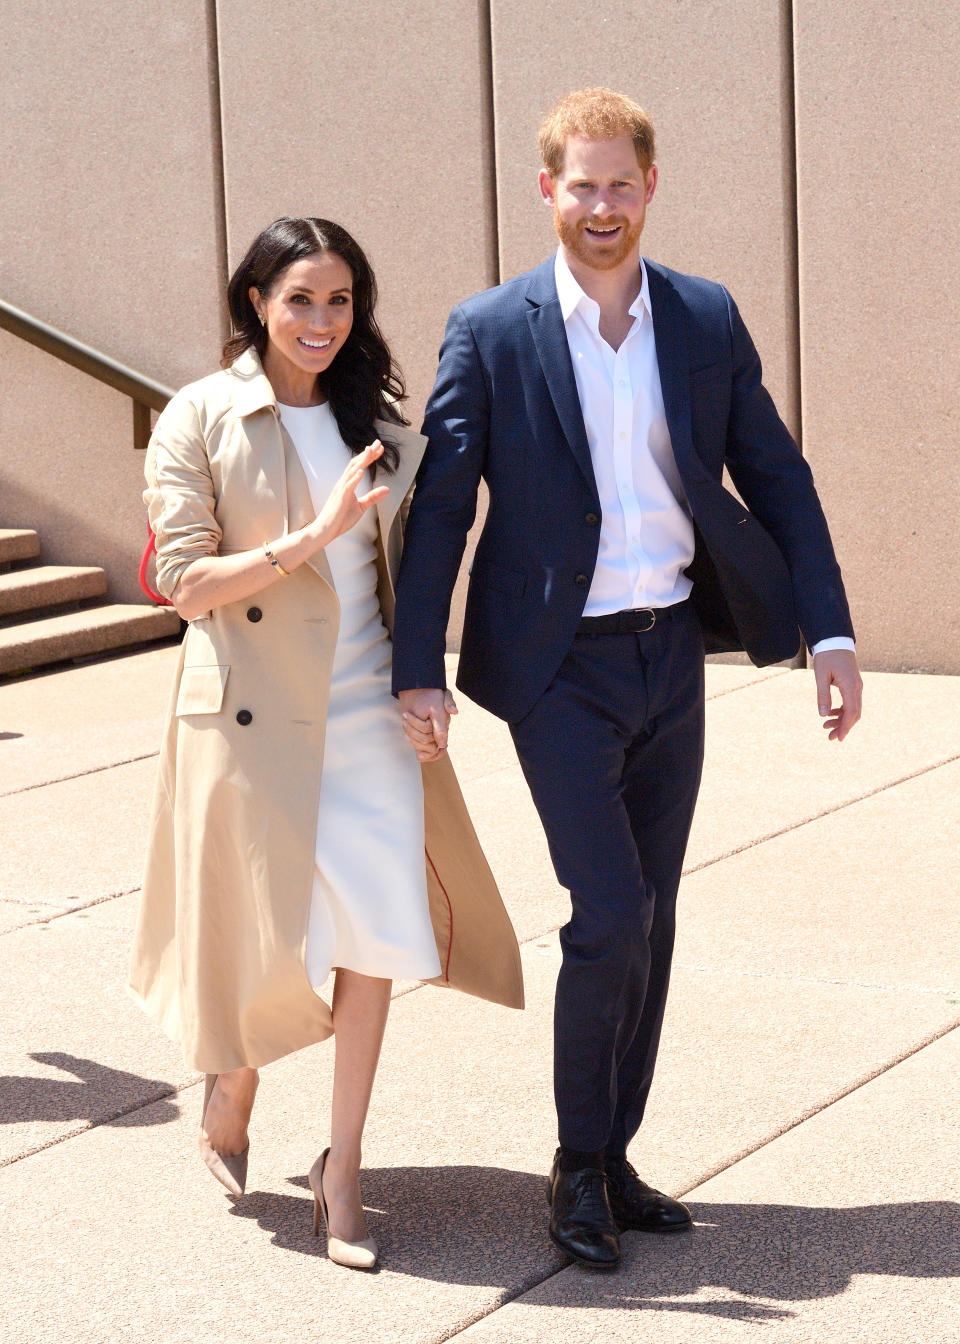 Prince Harry, Duke of Sussex and Meghan, Duchess of Sussex meet members of the public outside the Sydney Opera House on October 16, 2018 in Sydney, Australia.